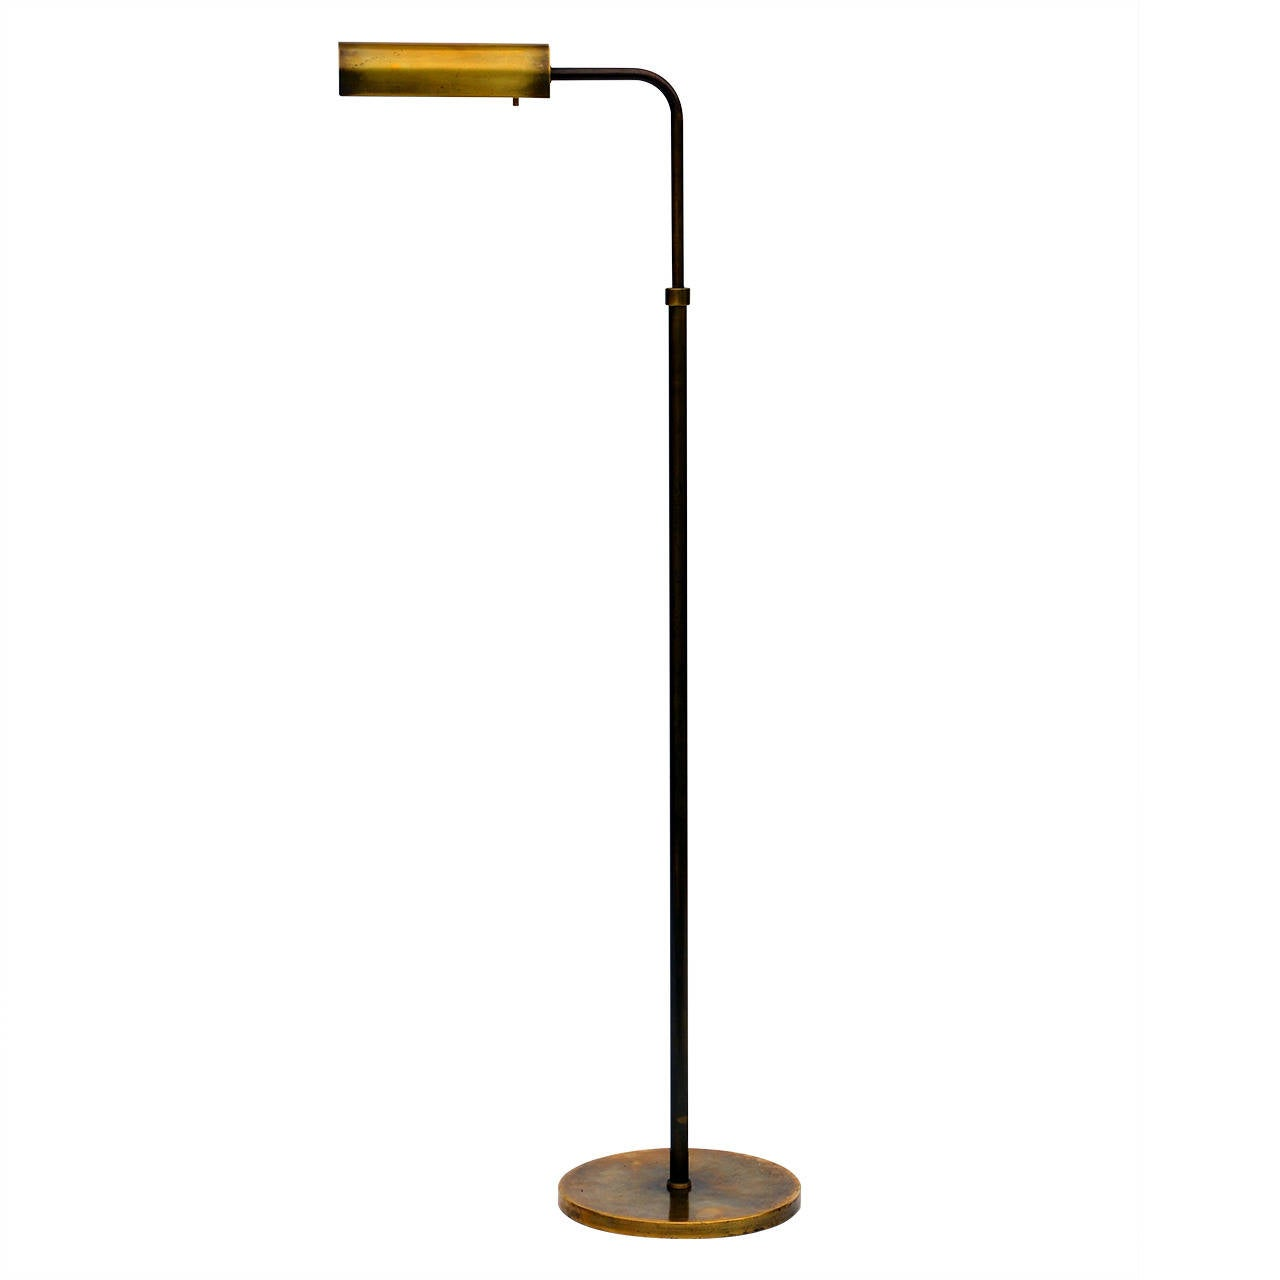 Top 28 floor l for reading top 28 floor ls for for Retro floor reading lamp